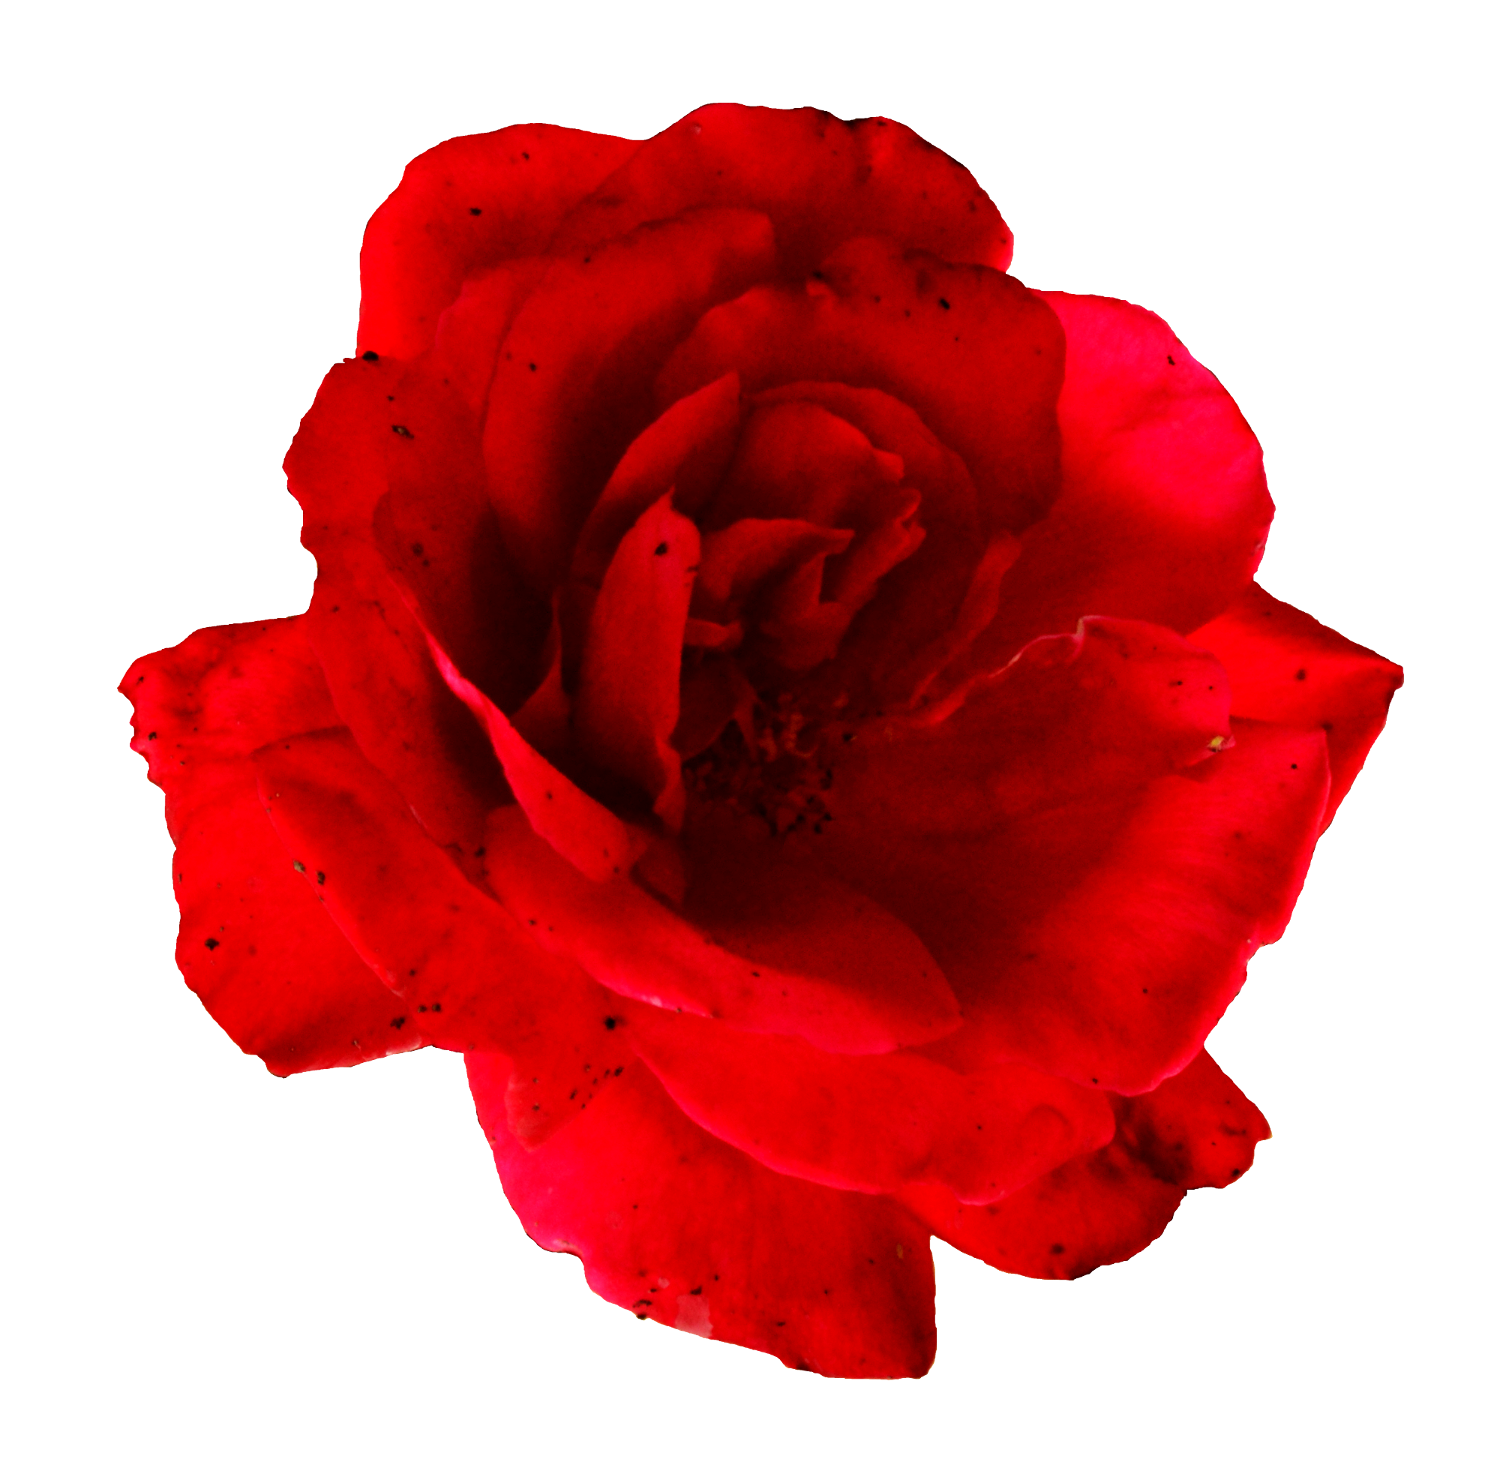 flower red rose. Transparent flowers png image free library